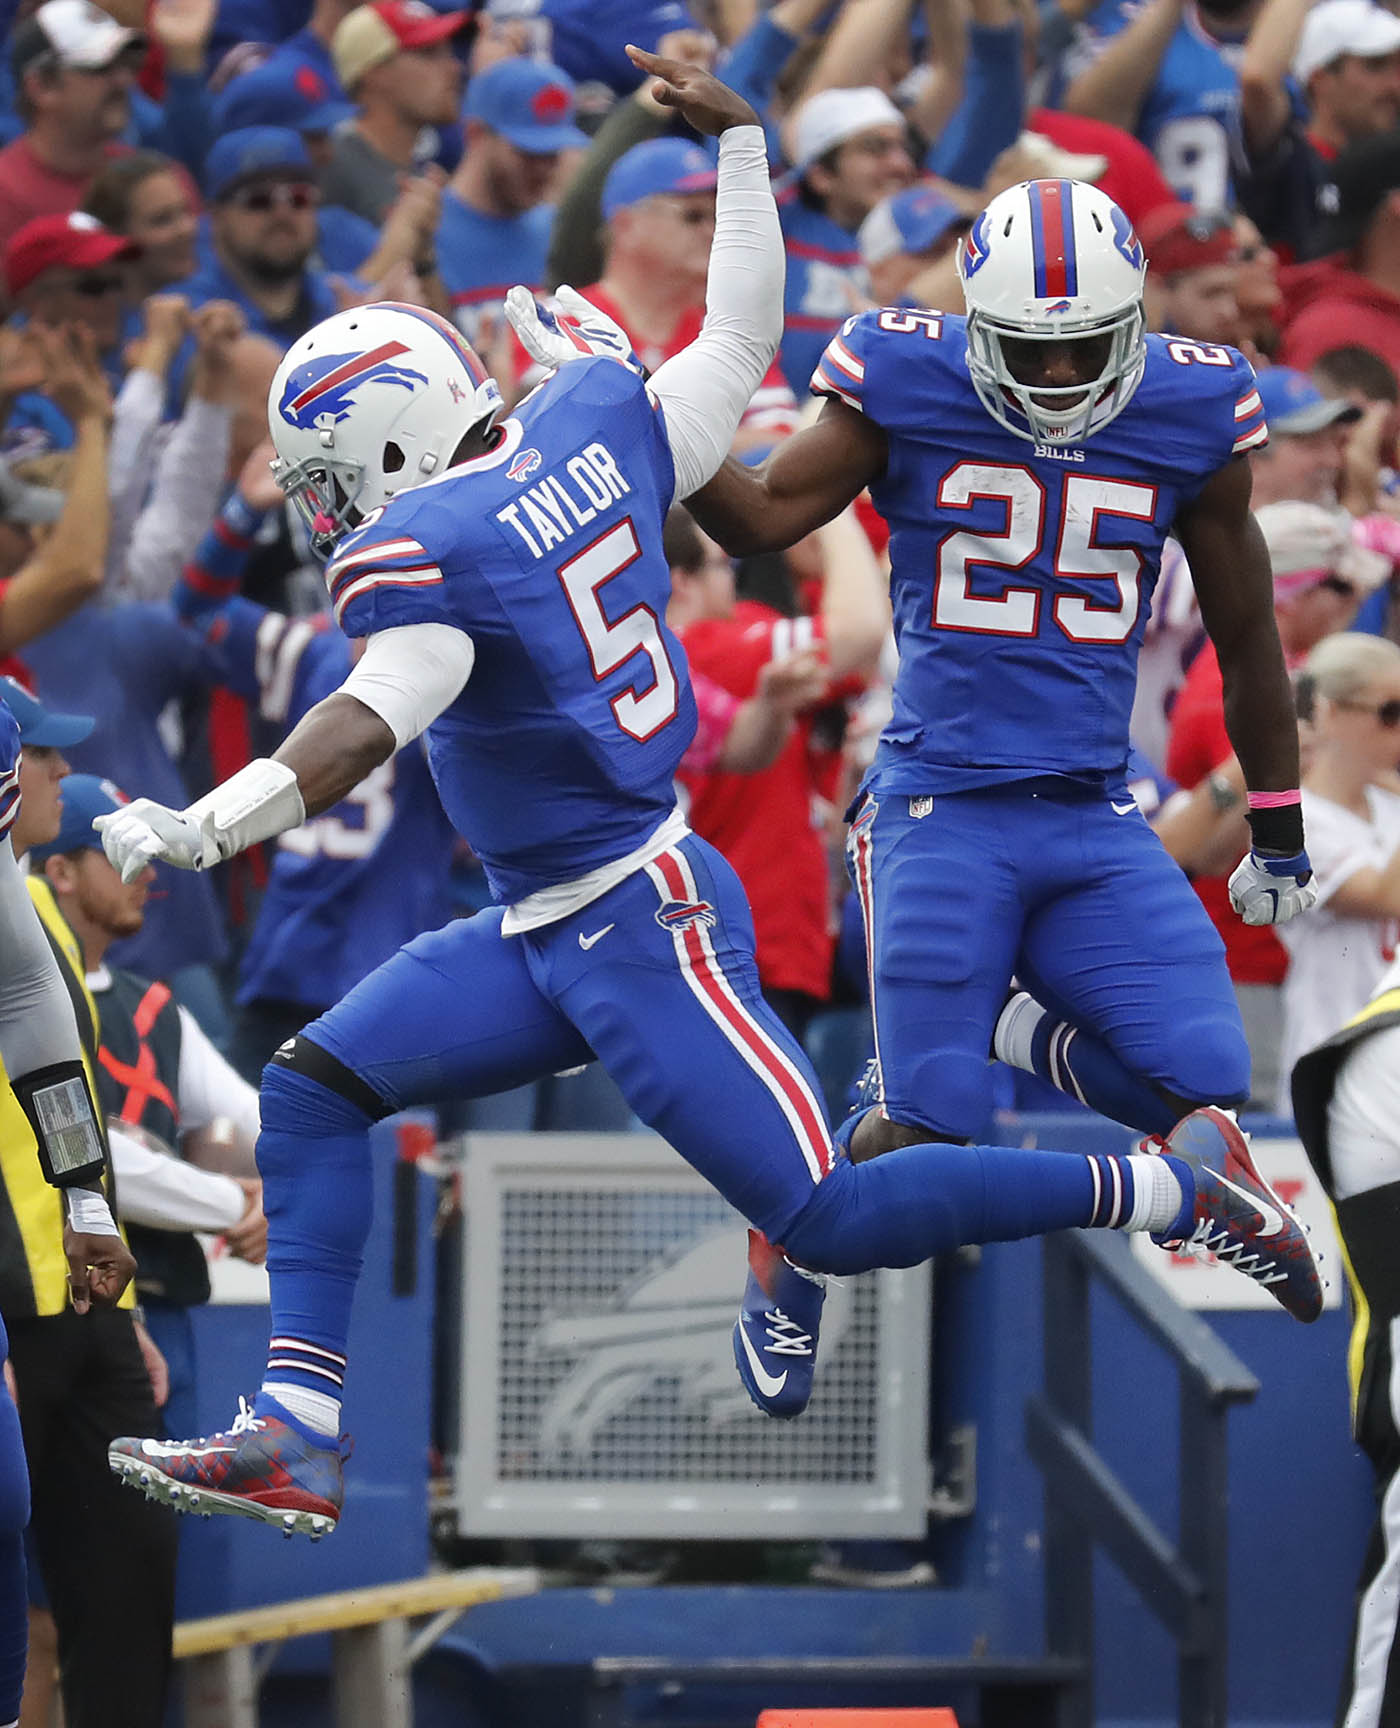 Buffalo Bills Tyrod Taylor and LeSean McCoy celebrate a Robert Woods touchdown against the San Francisco 49ers during the fourth quarter at New Era Field on Sunday, Oct. 16, 2016. (Harry Scull Jr./Buffalo News)